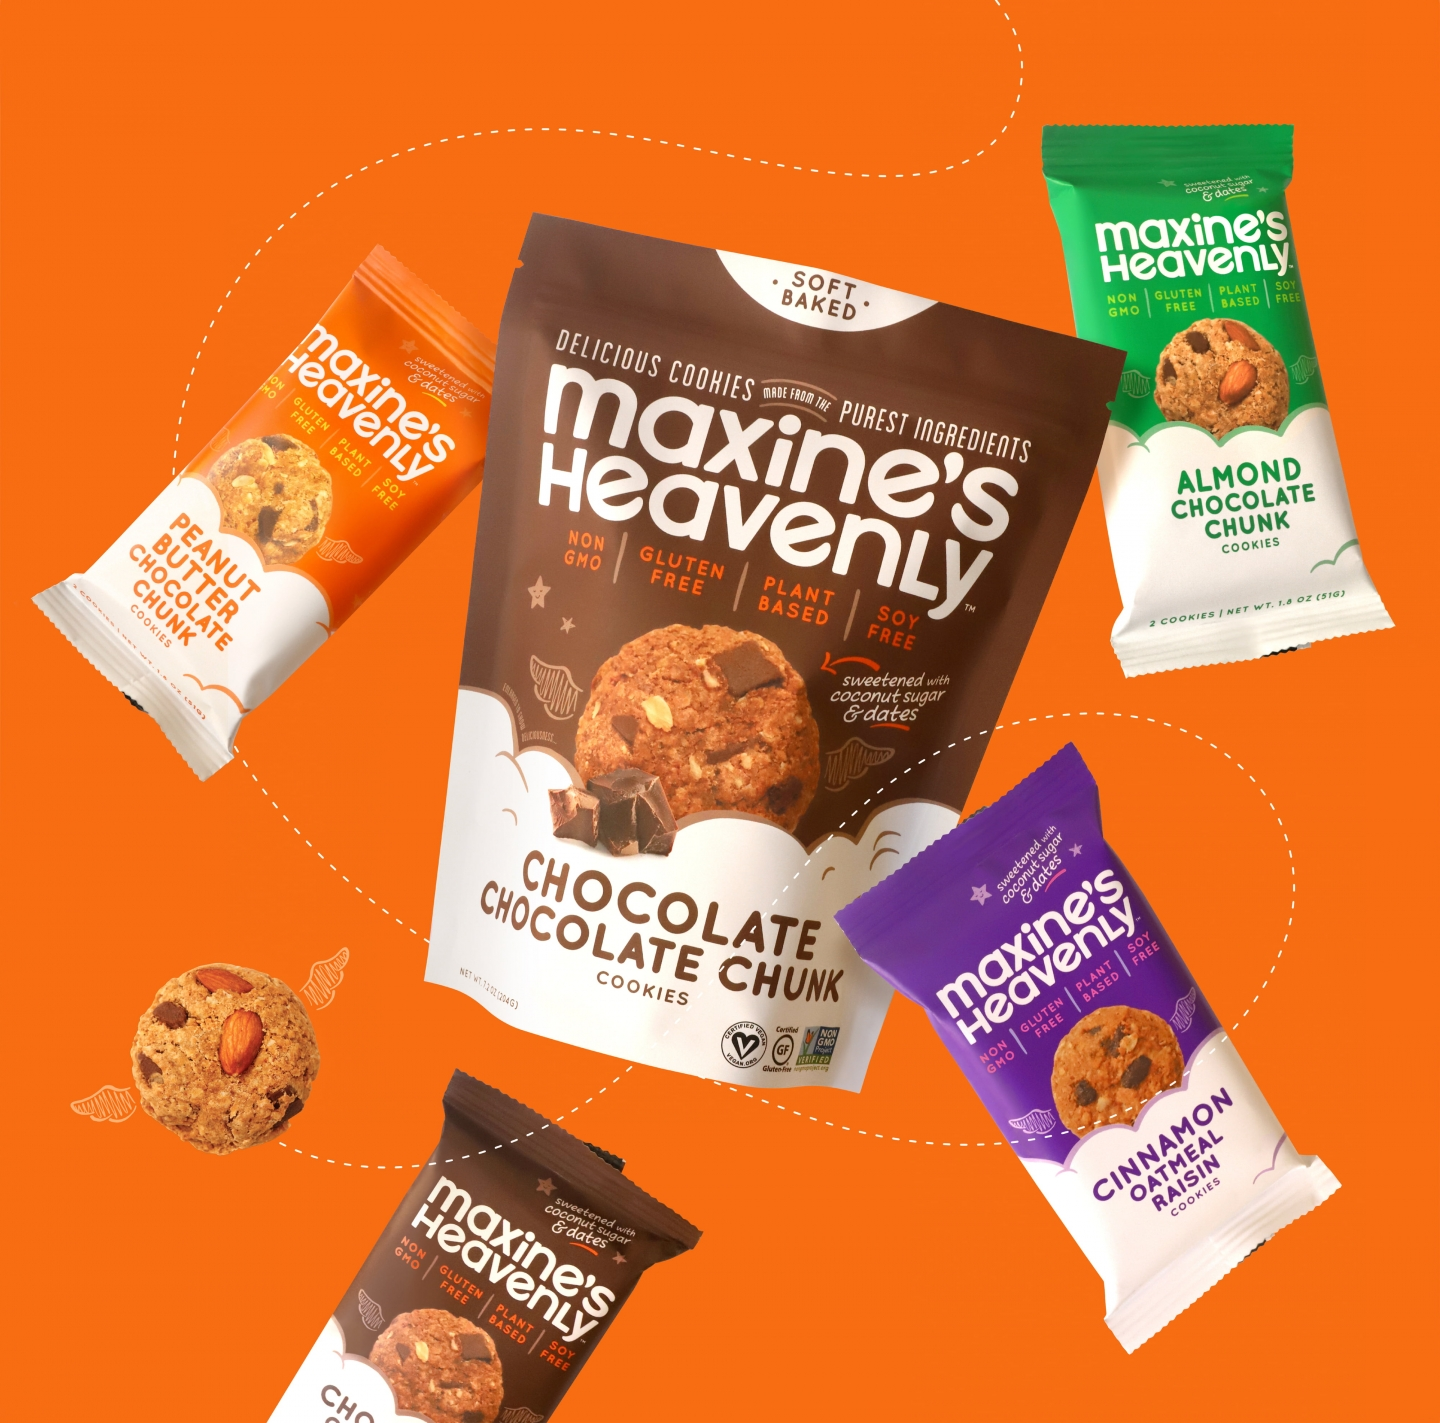 Cookie 2-packs and stand up pouch packaging floating